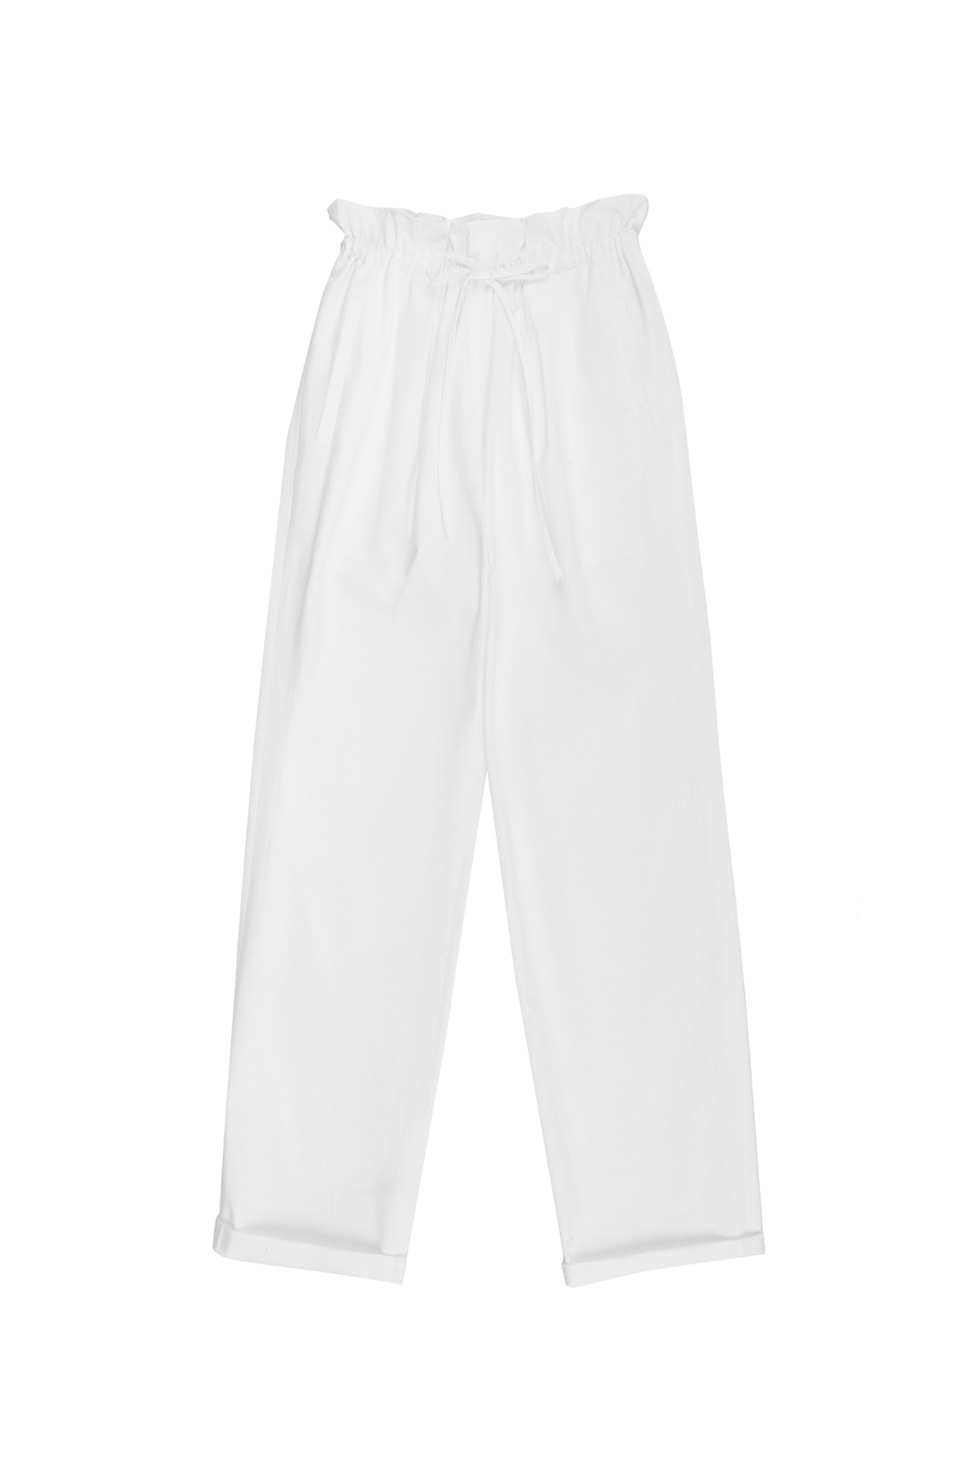 BANDING COTTON PANTS - WHITE